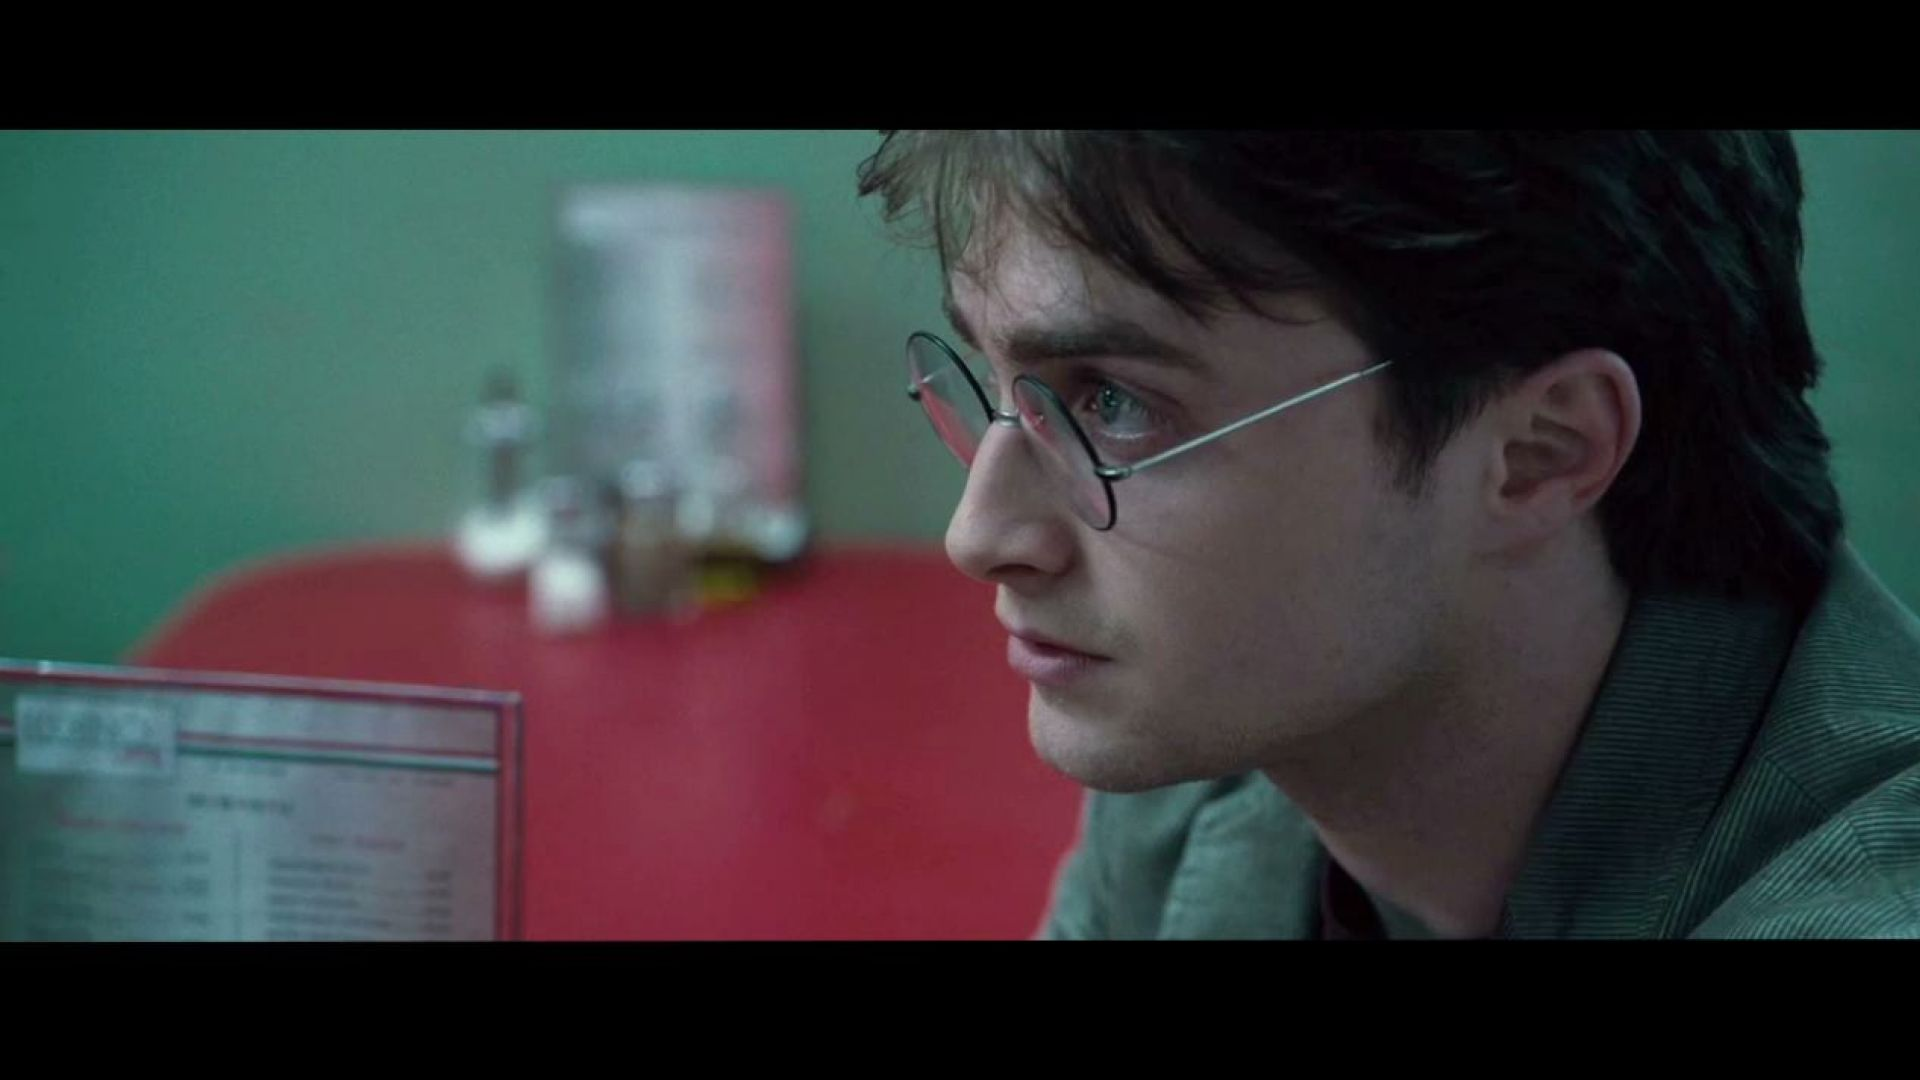 Harry Potter 7: Attack in the Cafe